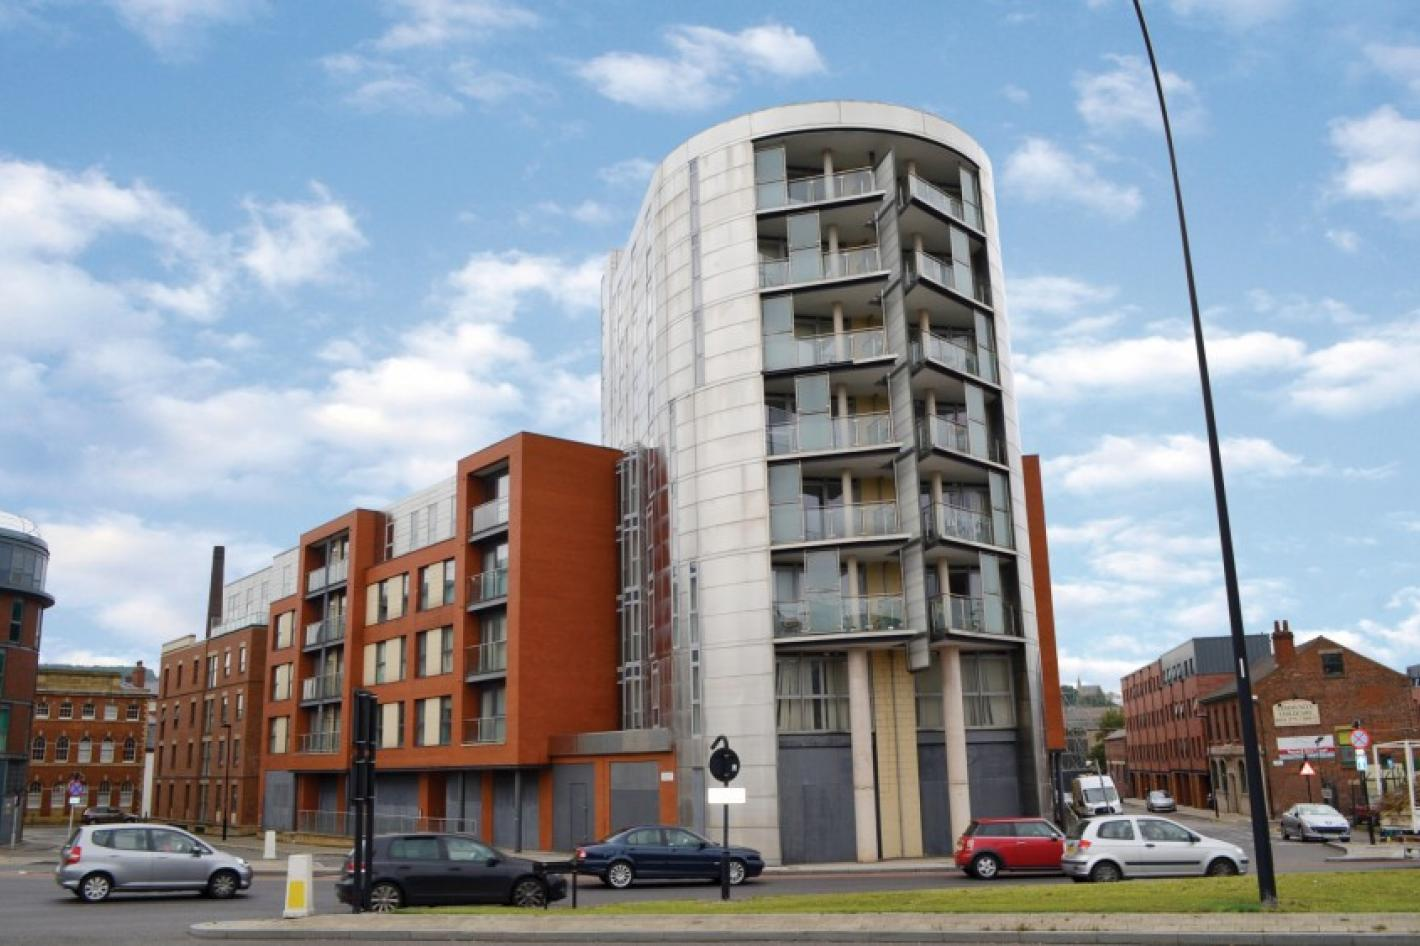 outside buy to let property investment in sheffield